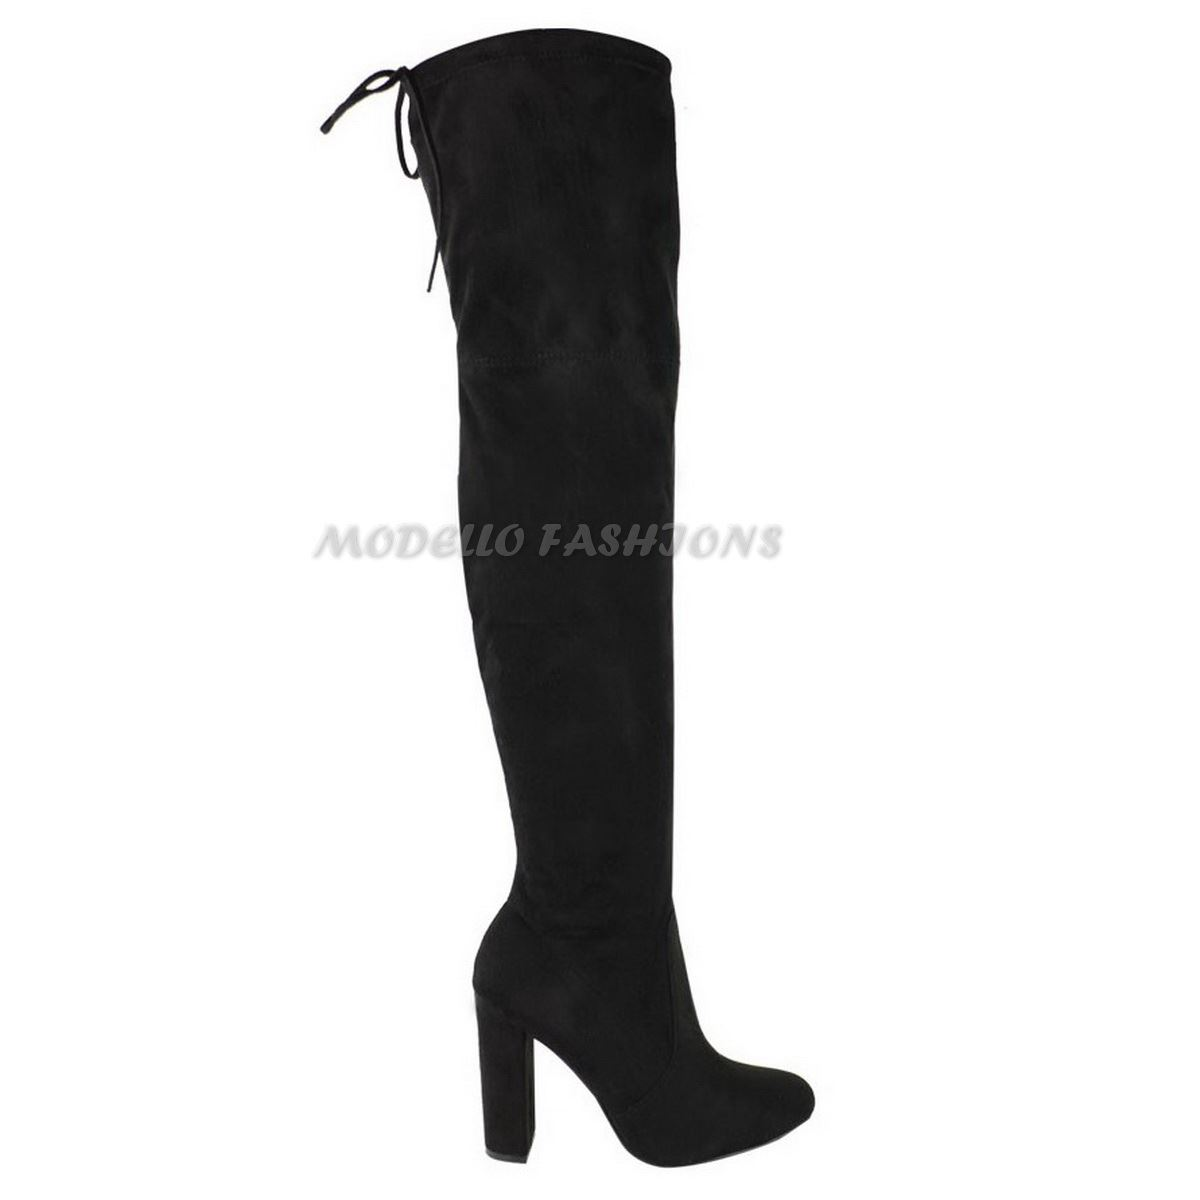 WOMENS-LADIES-THIGH-HIGH-BOOTS-OVER-THE-KNEE-PARTY-STRETCH-BLOCK-MID-HEEL-SIZE miniatuur 3